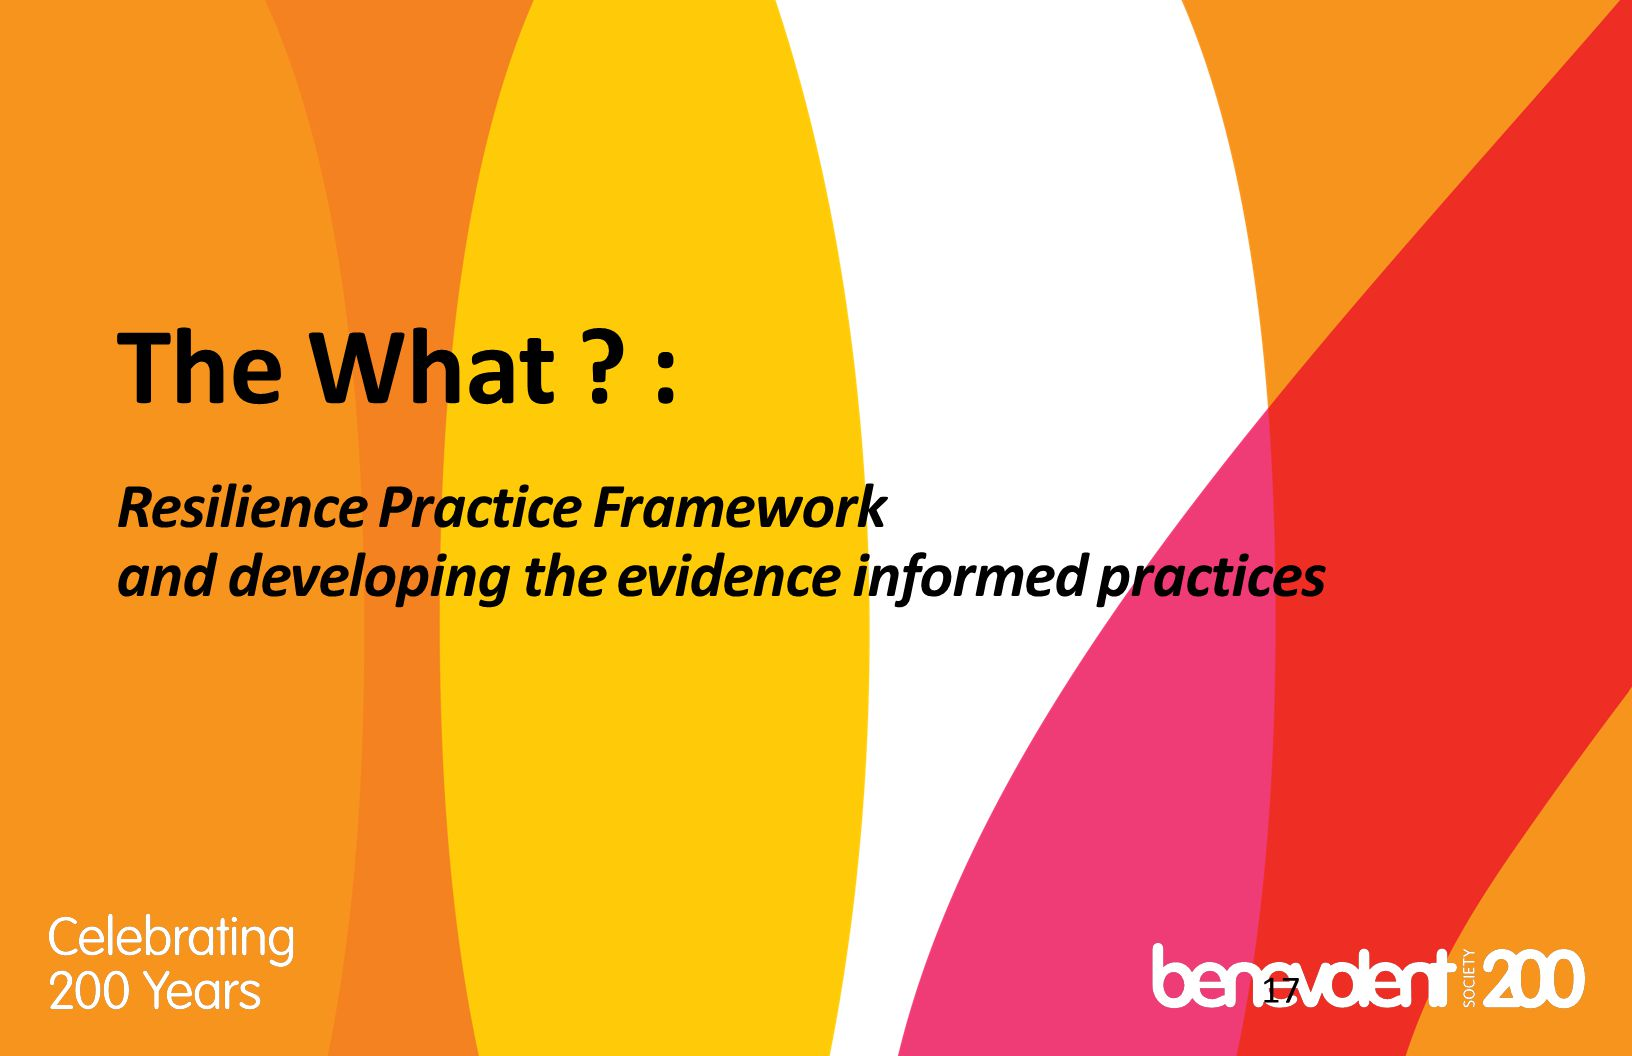 The What : Resilience Practice Framework and developing the evidence informed practices